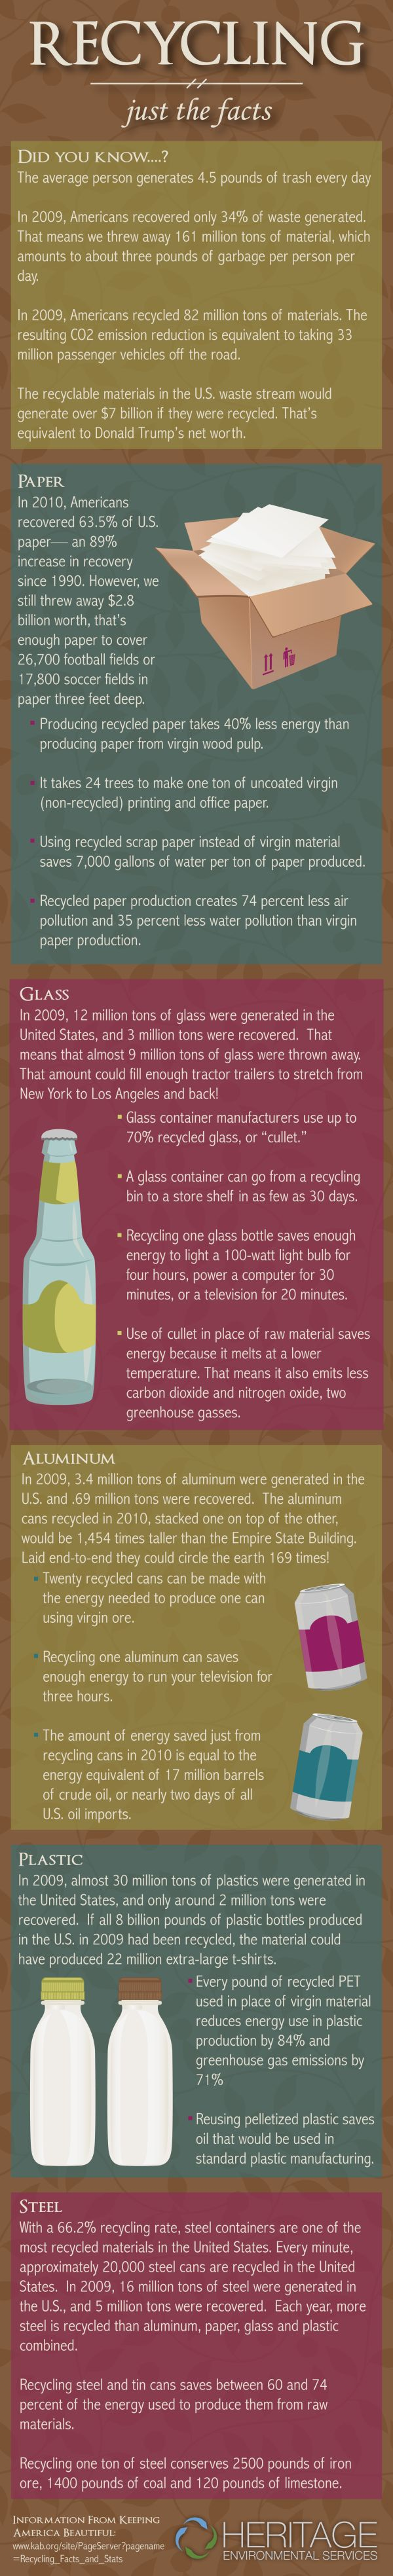 Recycling Facts - For more information on upcycling and waste management go to http://www.wasteconnectionsmemphis.com. #upcycle #recycle